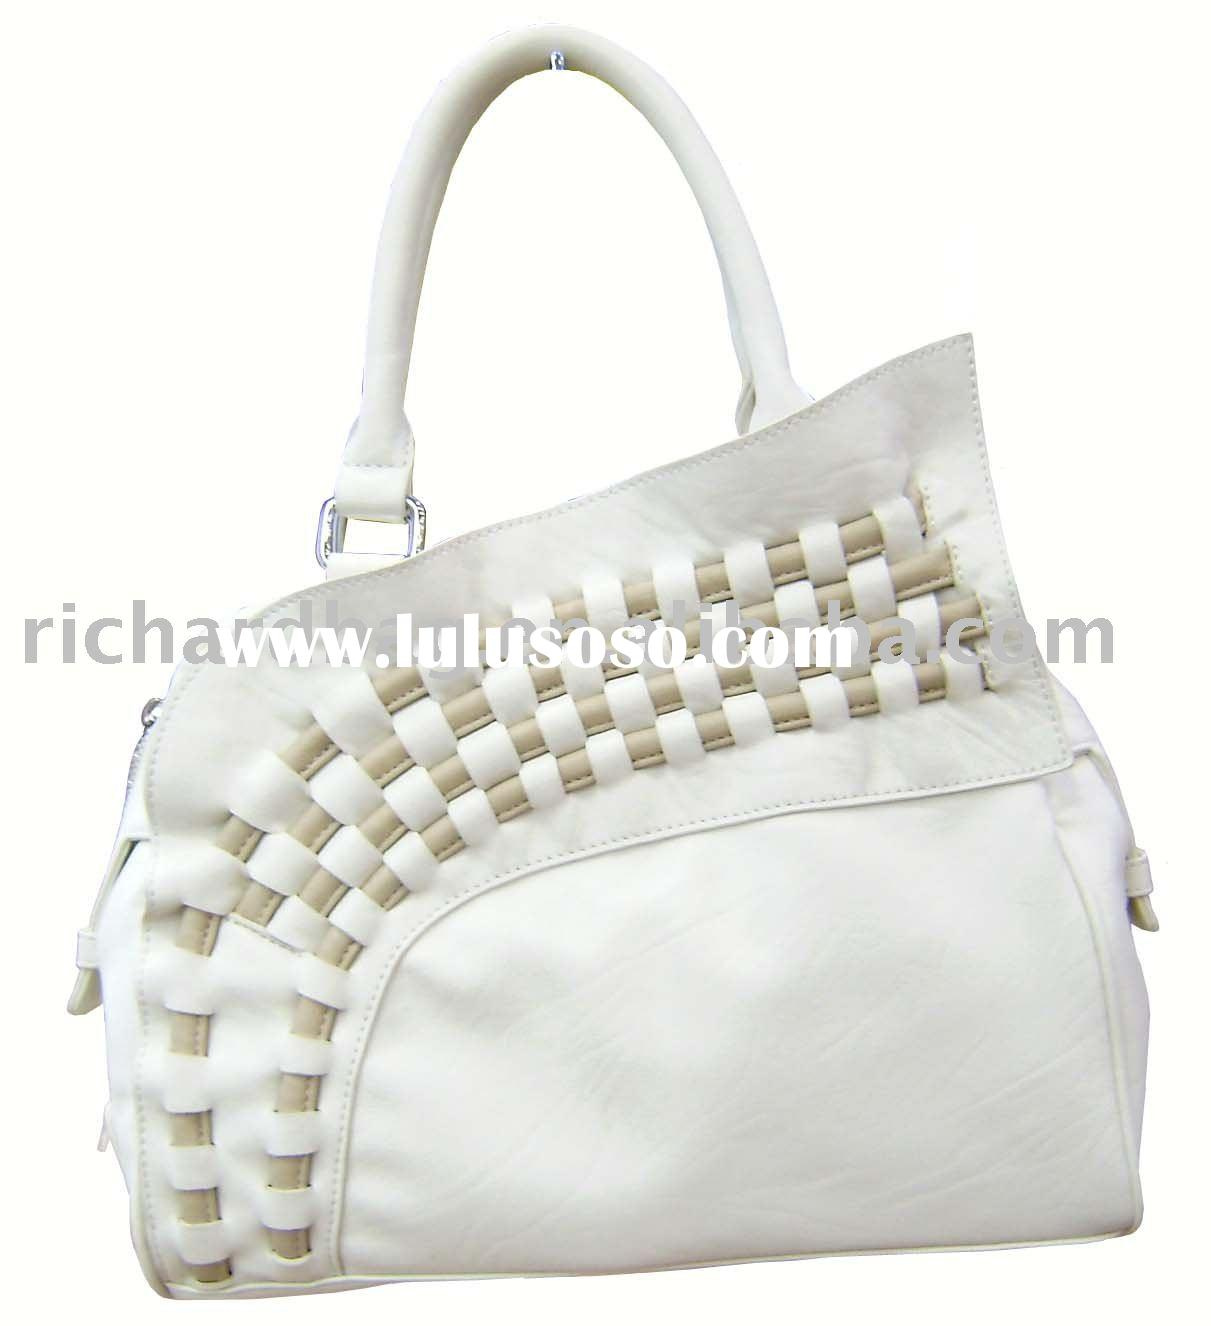 new style, fashion lady handbag for 2011 spring season